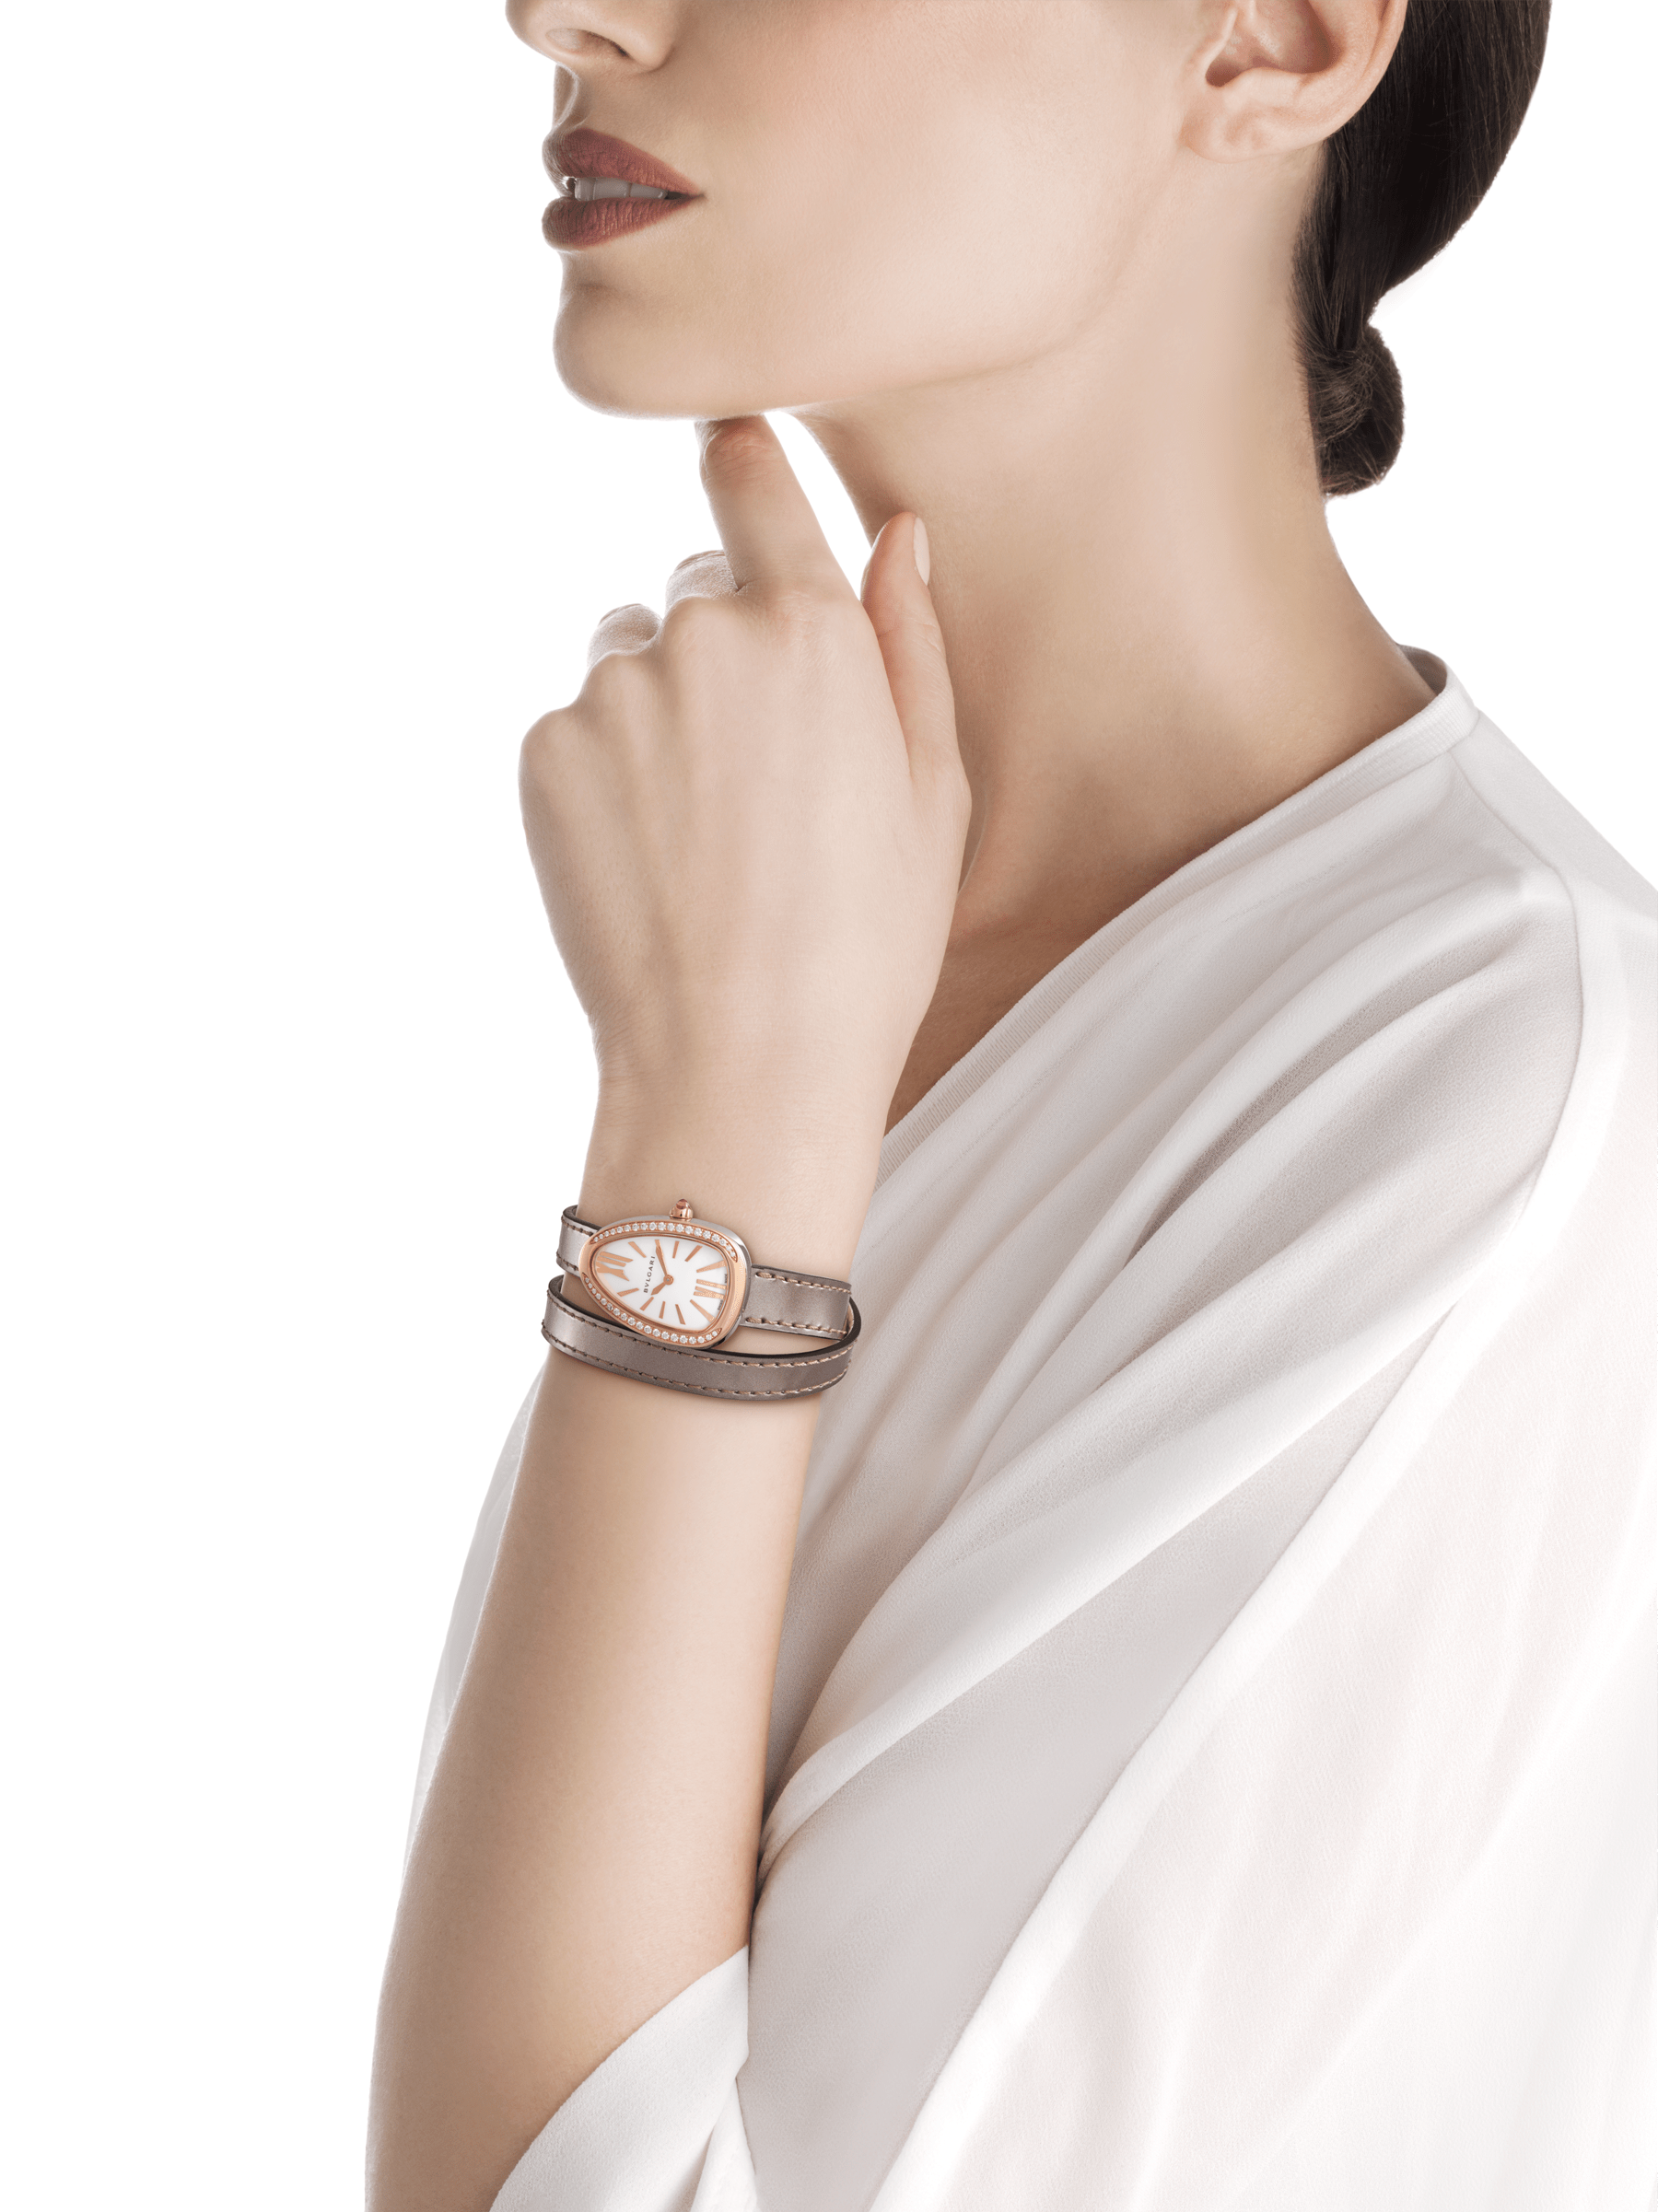 Serpenti watch with stainless steel case, 18 kt rose gold bezel set with round brilliant-cut diamonds, white mother-of-pearl dial and interchangeable double spiral bracelet in brown leather 103059 image 3